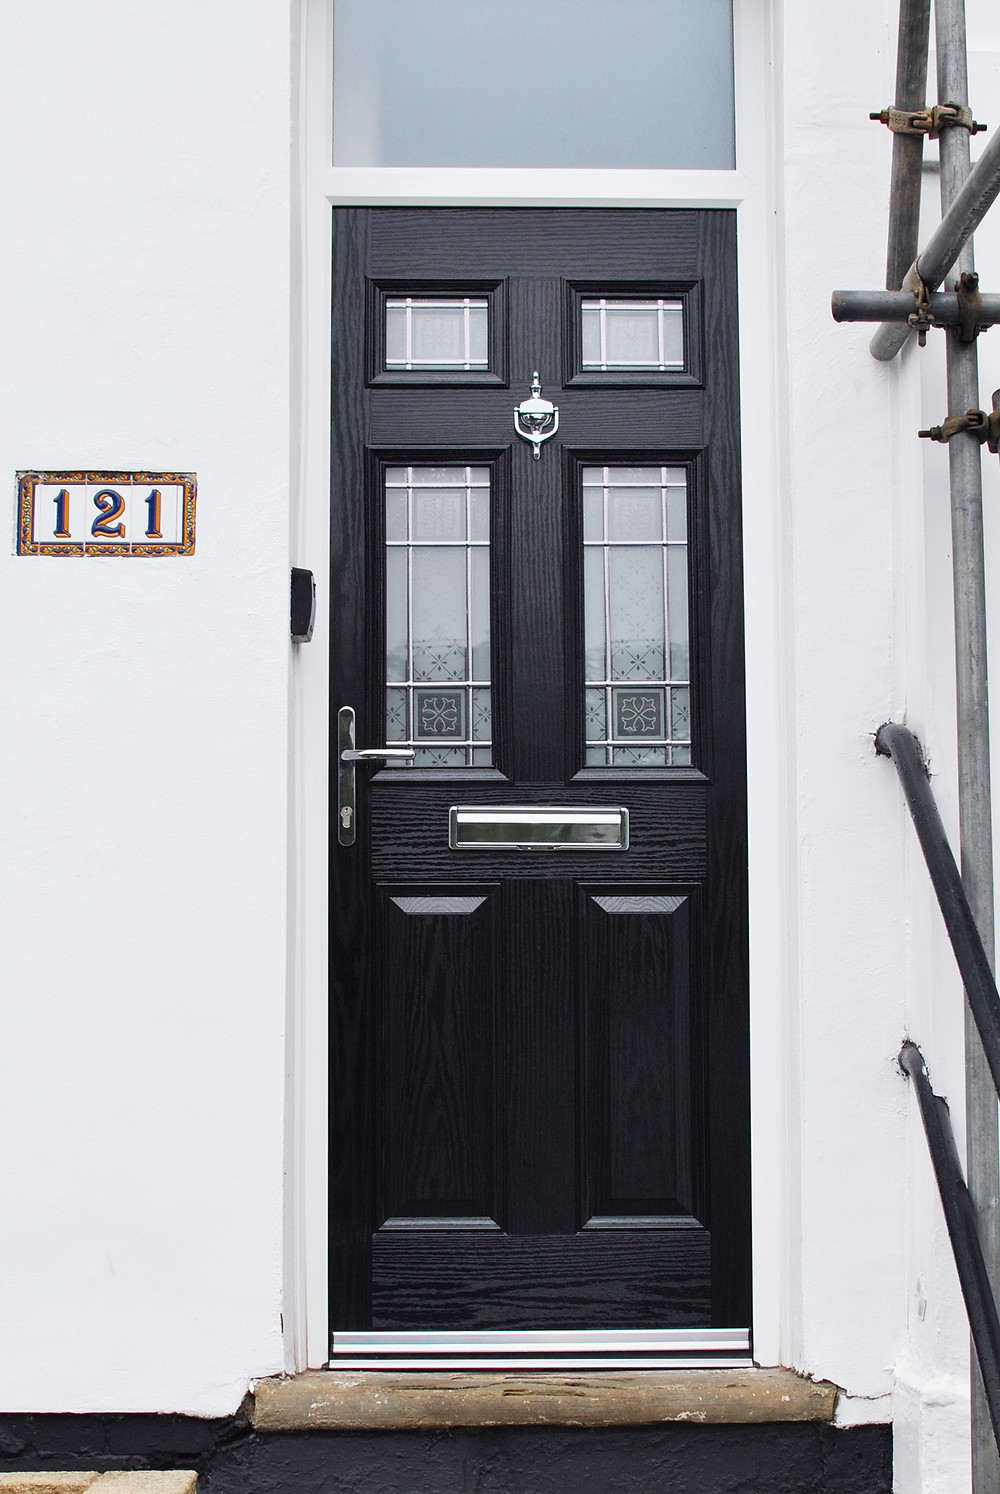 A Classy Black Composite Door installation in Brotton - Redcar - Cleveland - Teesside - Middlesbrough - Marton Windows - Coulby Newham - Durham - Darlington